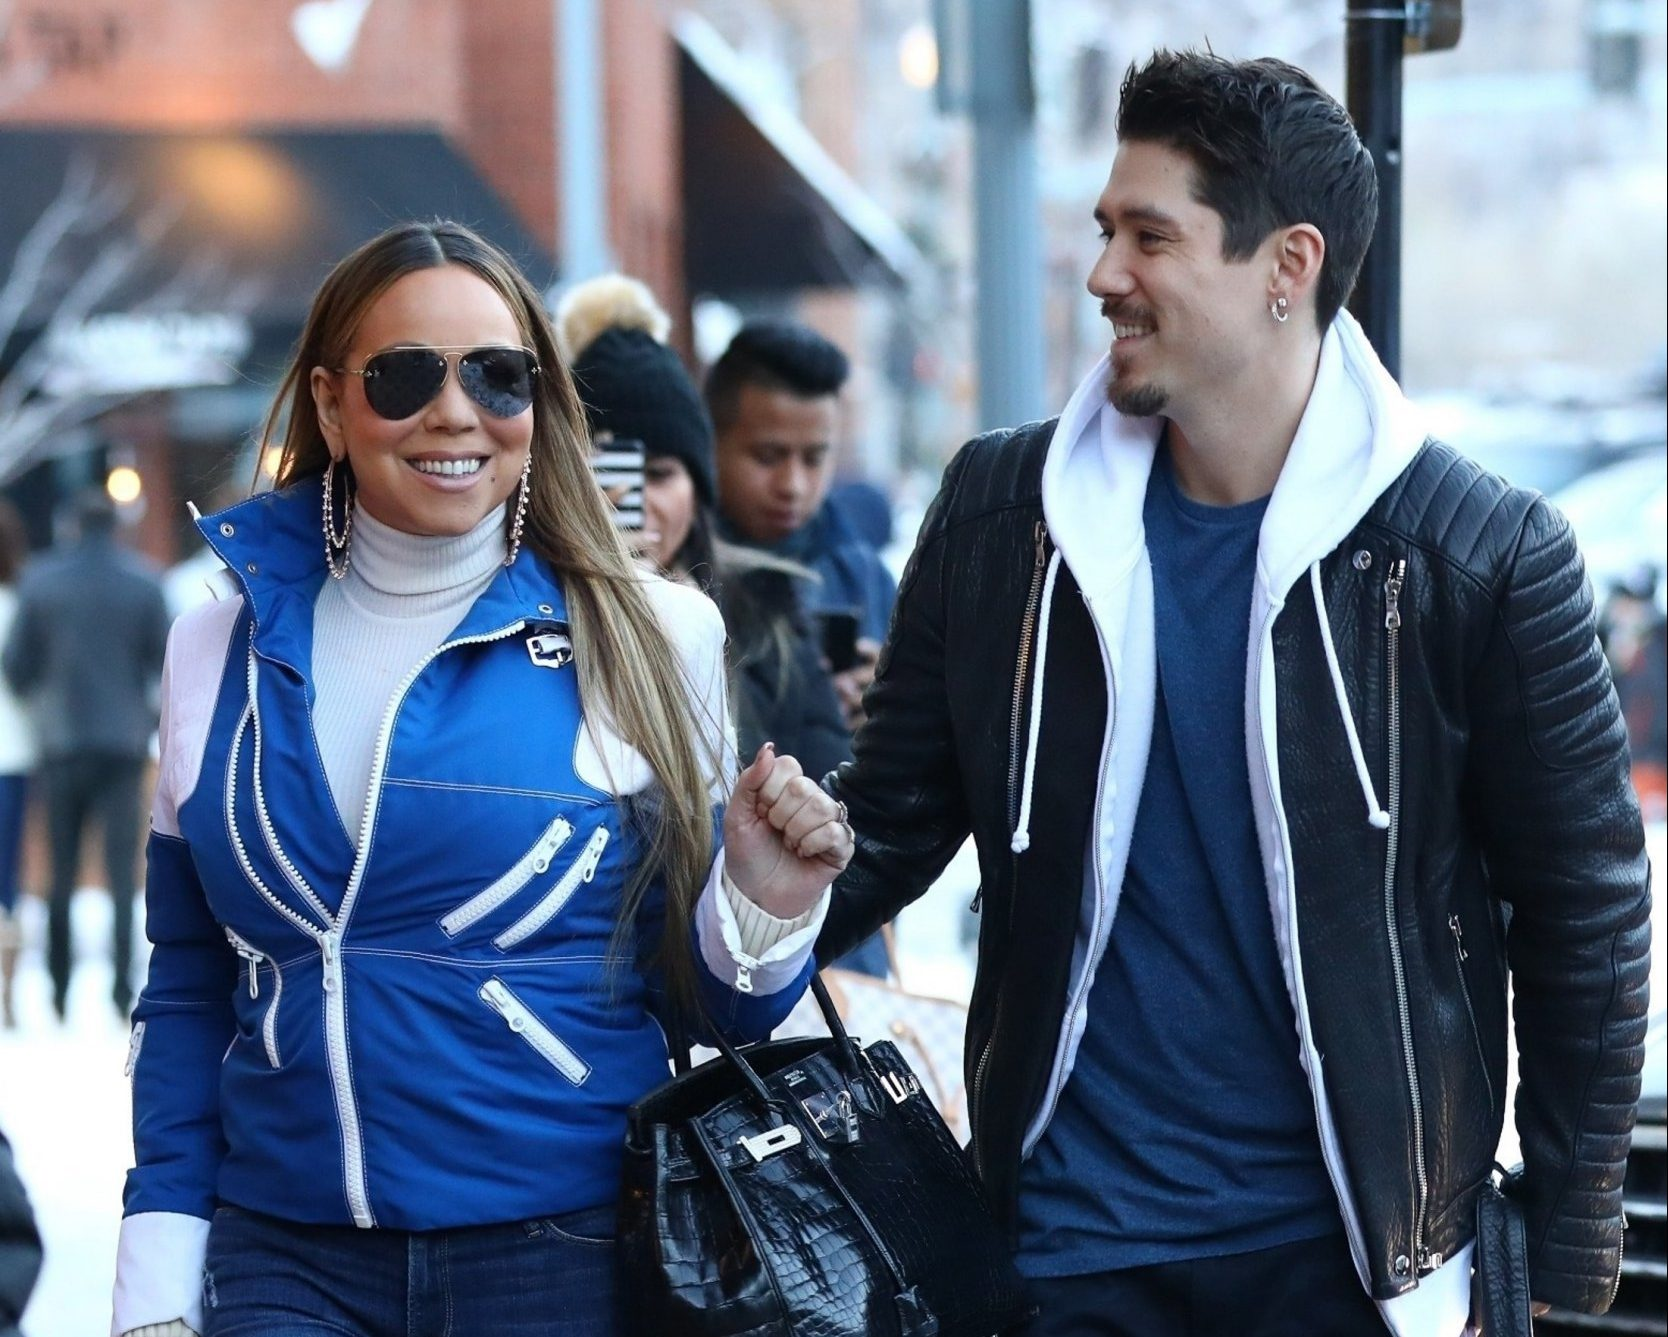 Aspen, CO - Superstar singer, Mariah Carey, and dancer boyfriend, Bryan Tanaka have had their fair share of shopping while out in Aspen for the holidays. The couple paid a visit to the Gucci store and were spotted with smiles that they carried all the way into the store. Pictured: Mariah Carey, Bryan Tanaka BACKGRID USA 22 DECEMBER 2018 USA: +1 310 798 9111 / usasales@backgrid.com UK: +44 208 344 2007 / uksales@backgrid.com *UK Clients - Pictures Containing Children Please Pixelate Face Prior To Publication*